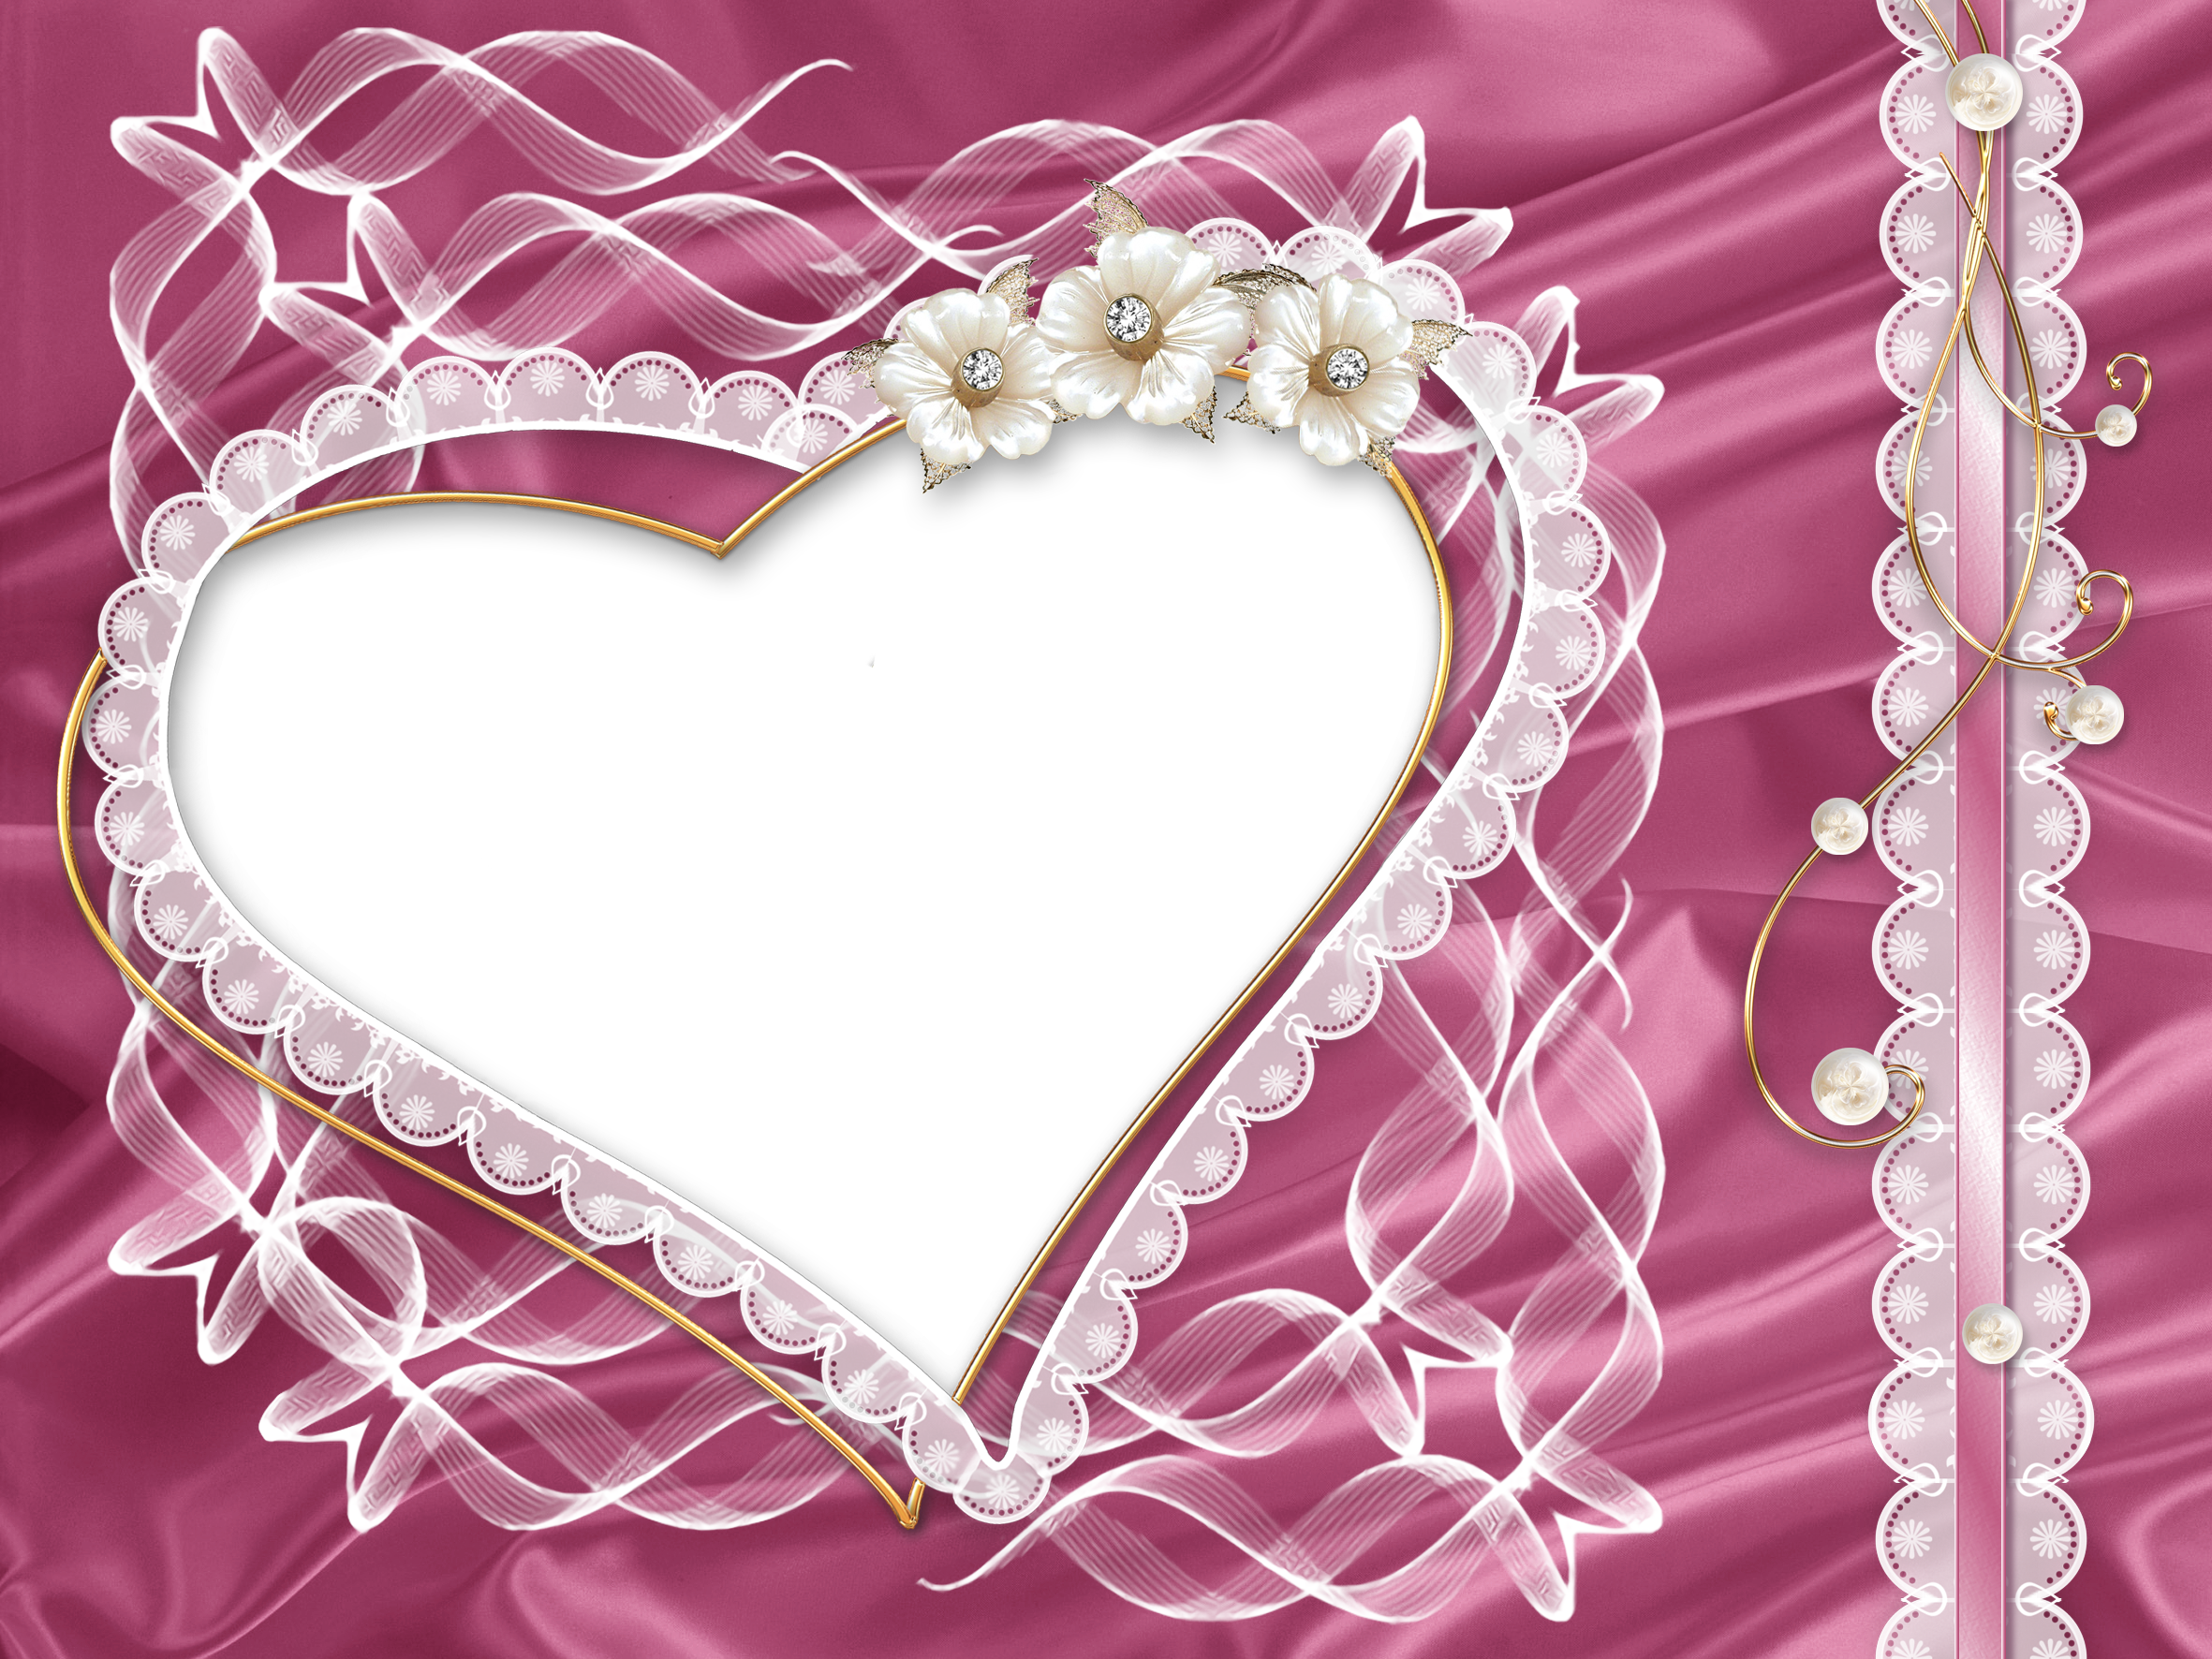 Heart frame png. Transparent pink photo with